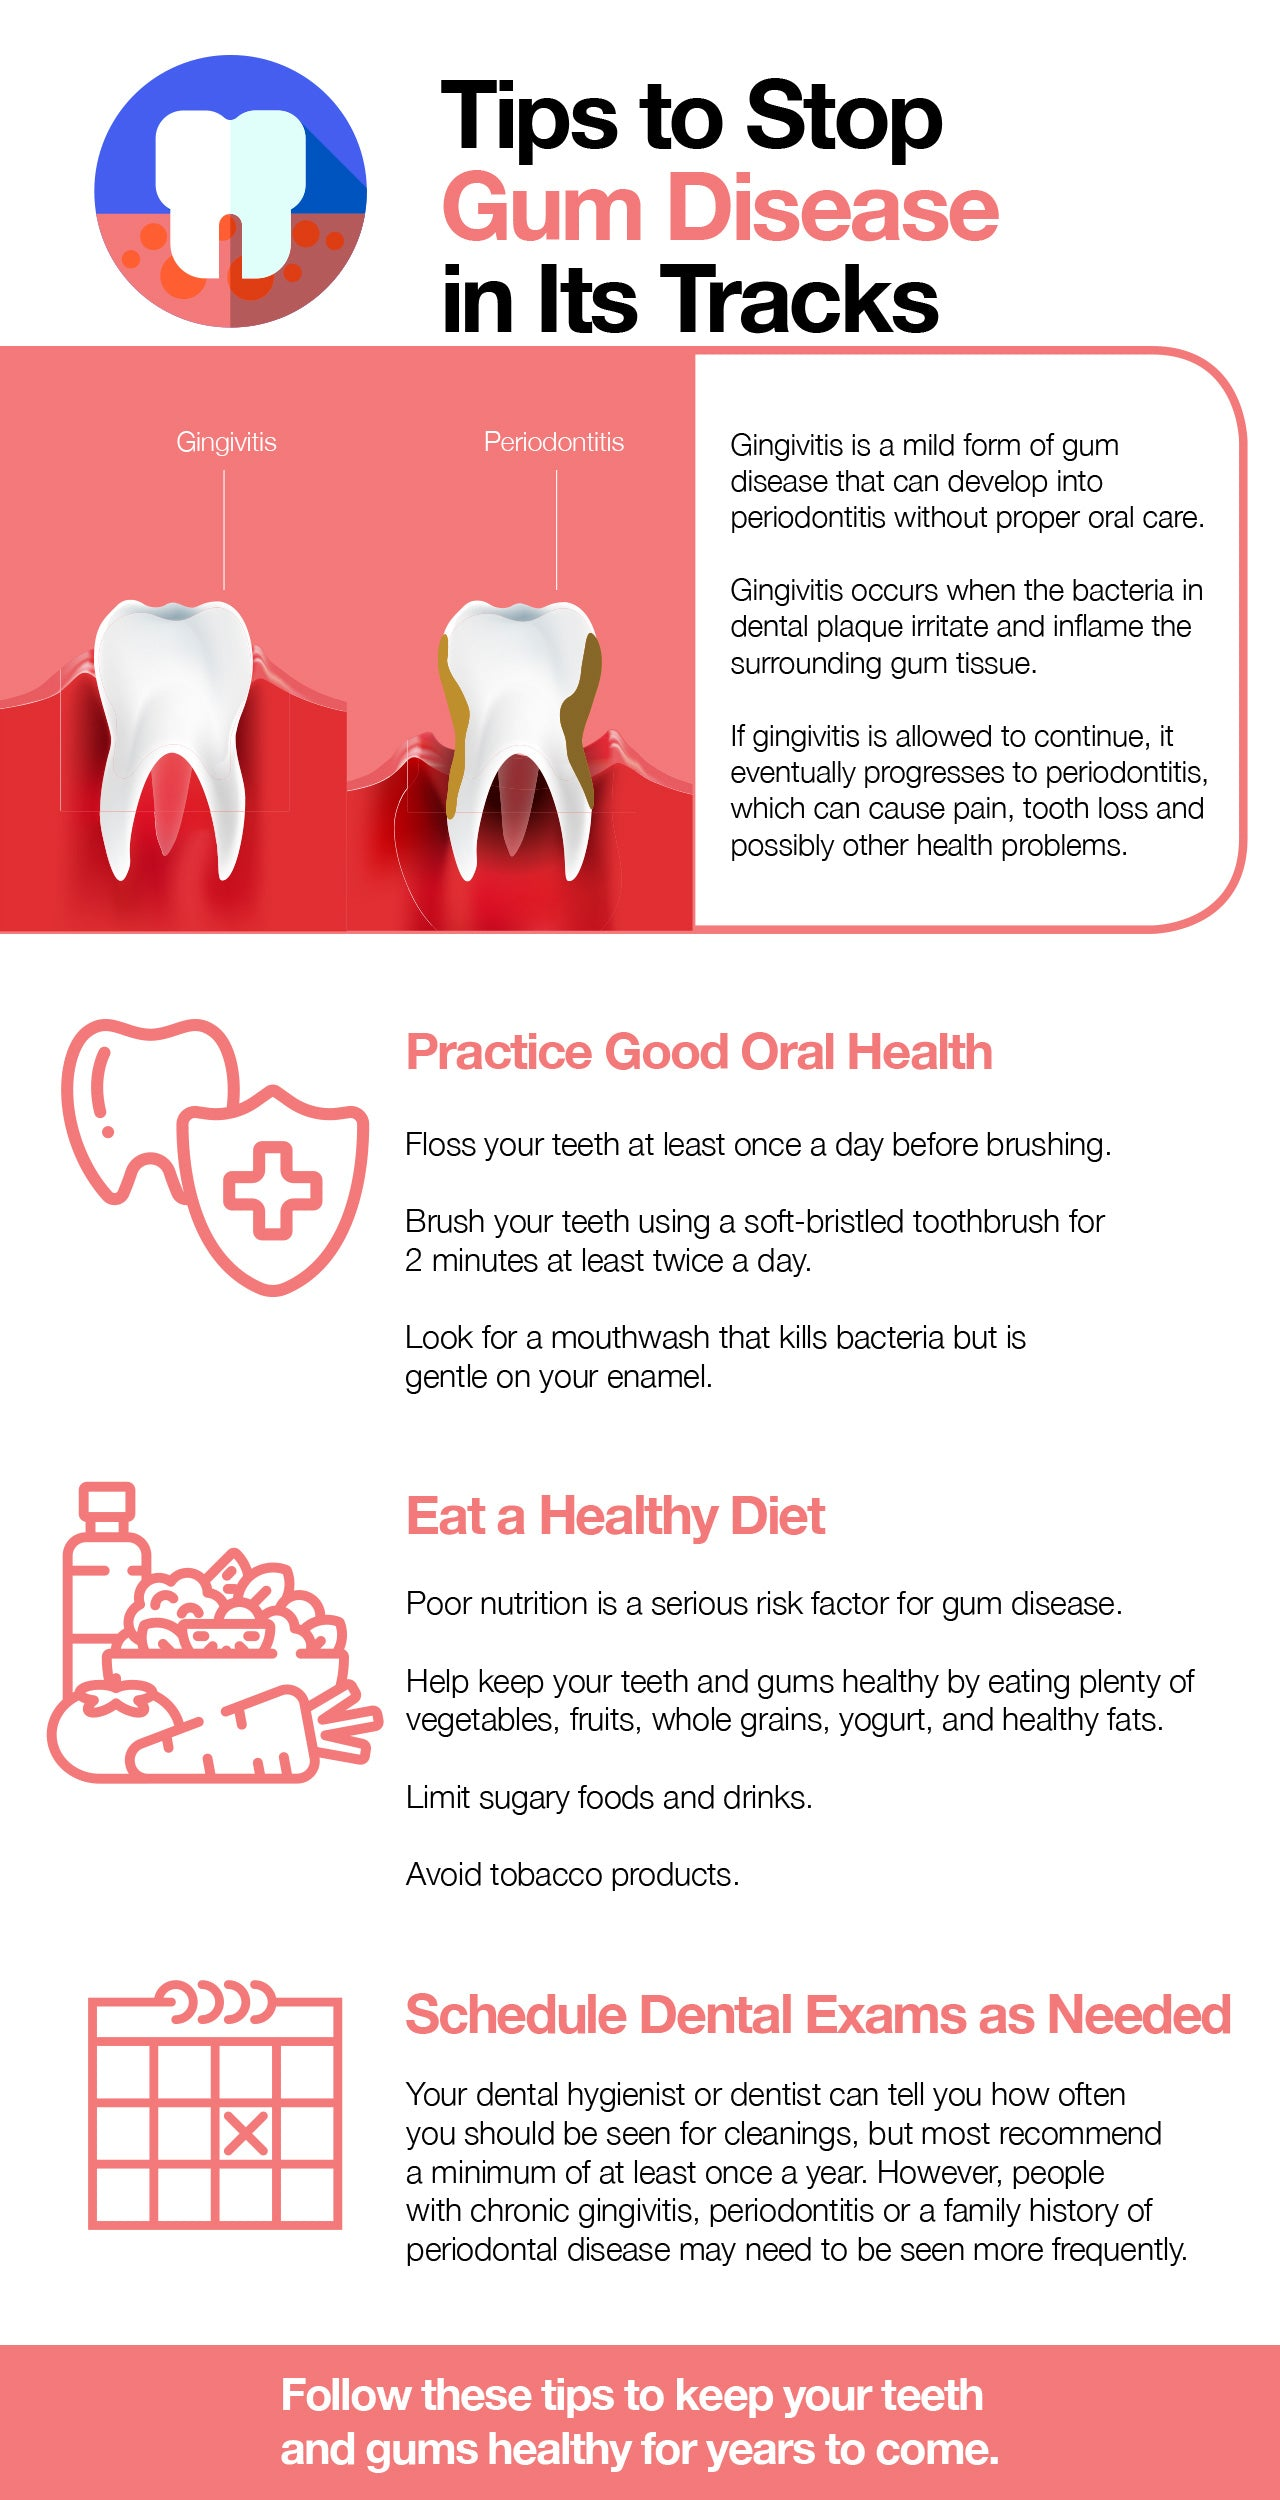 Treat gum disease and other tips